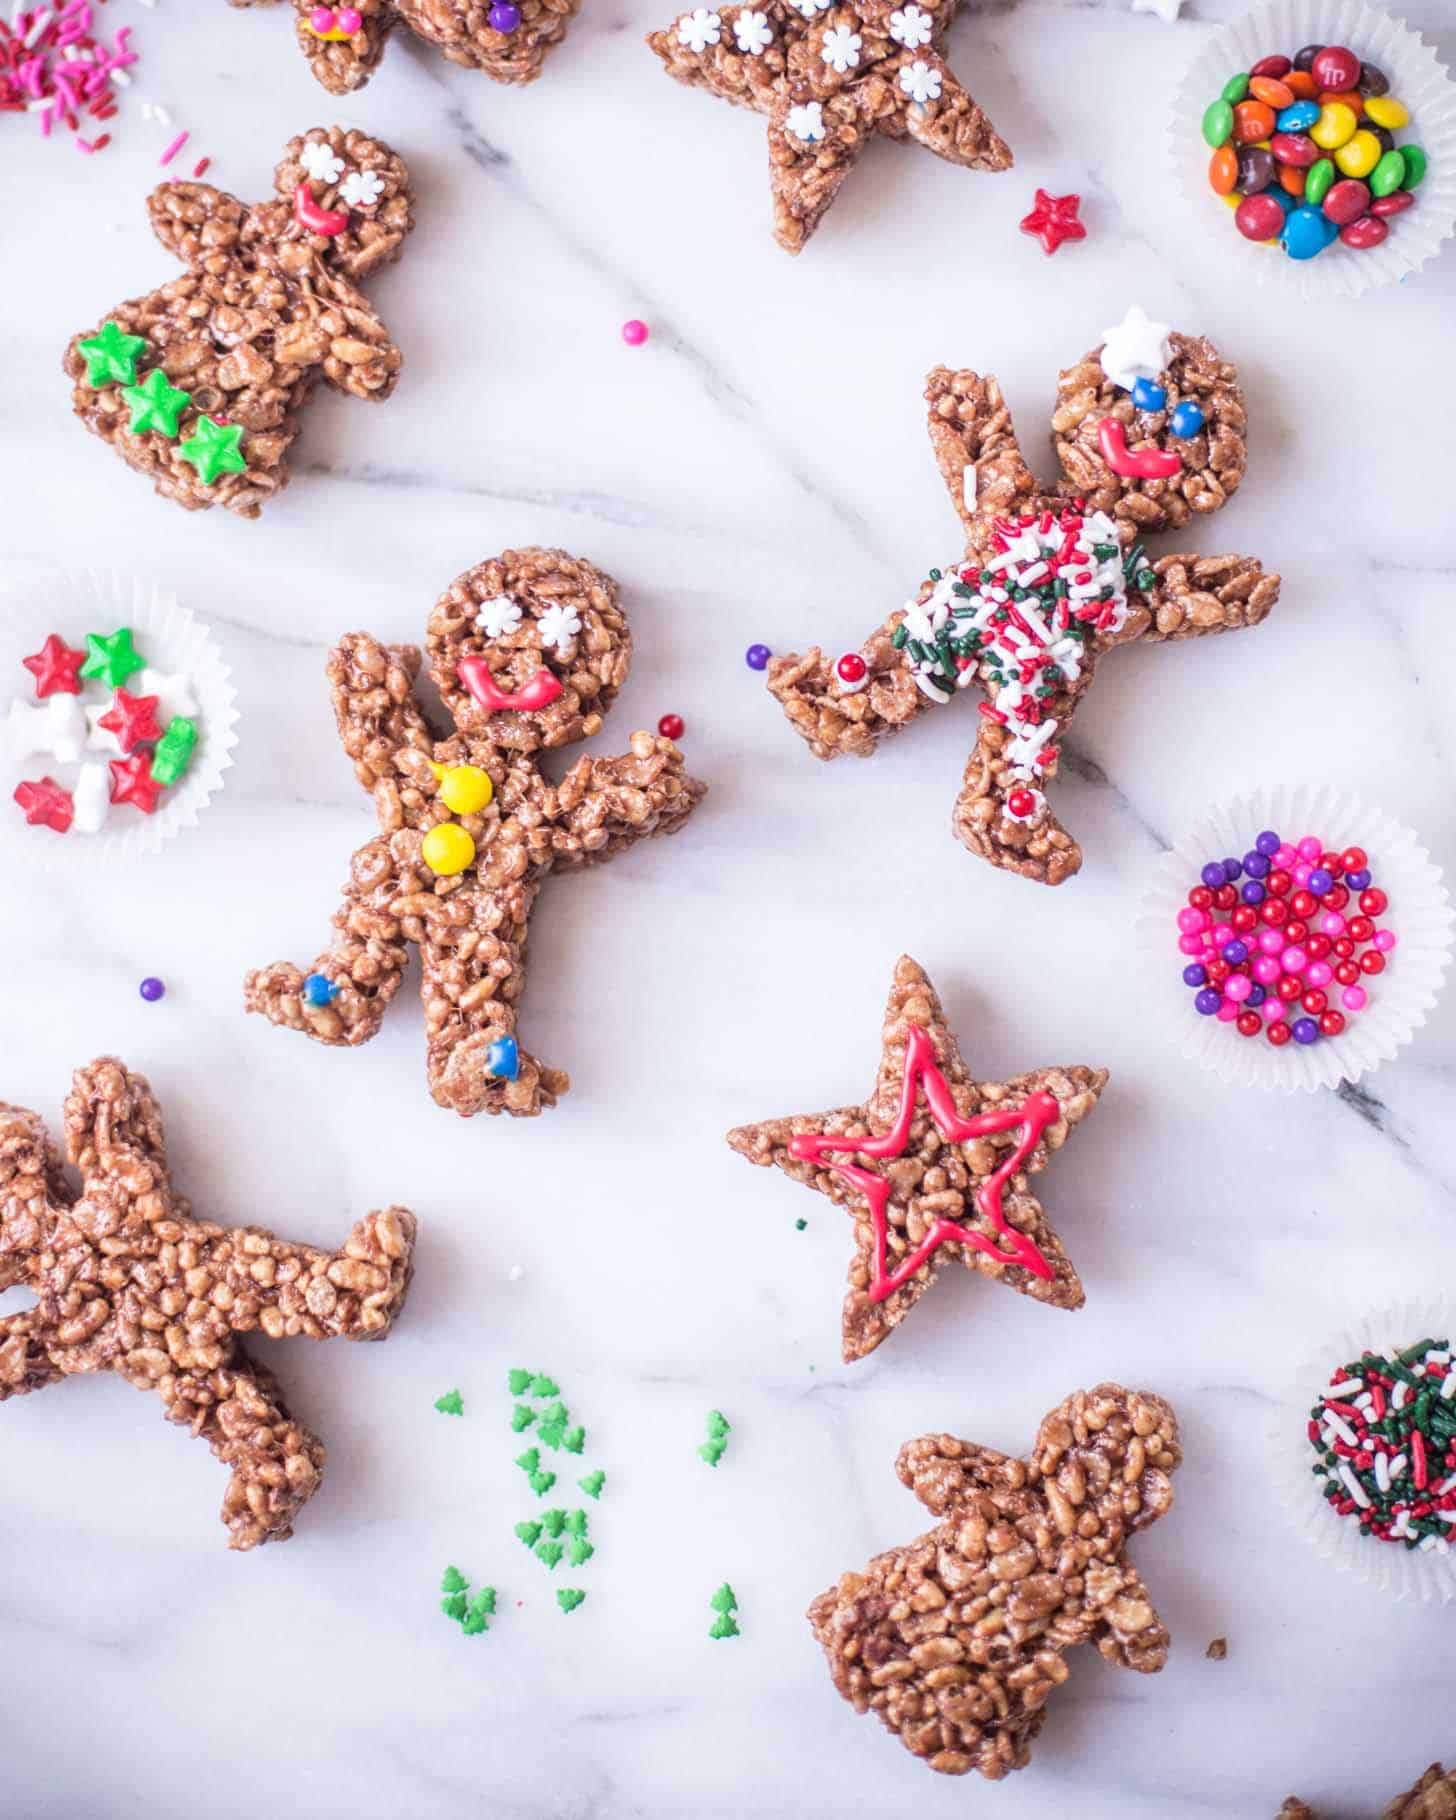 Chocolate Rice Krispies Gingerbread Men on a white countertop